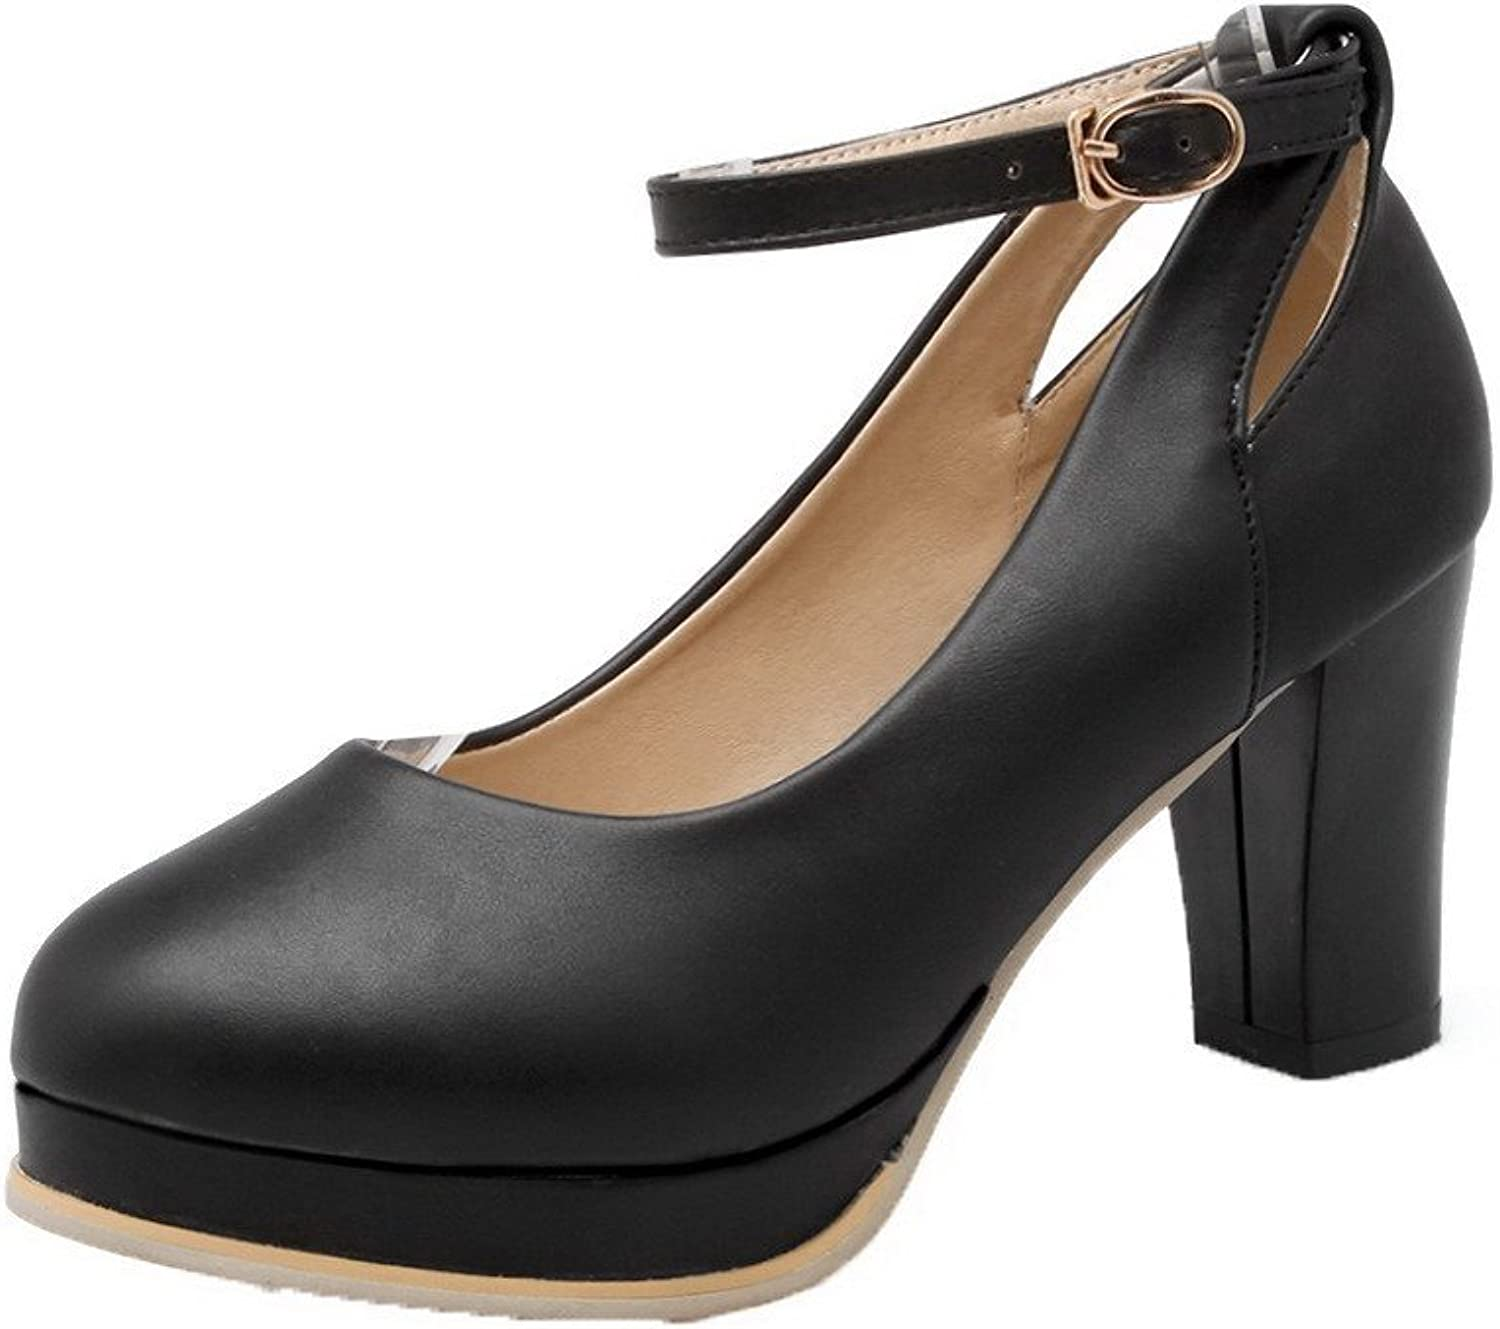 WeenFashion Women's PU Buckle Round Closed Toe High-Heels Solid Pumps-shoes